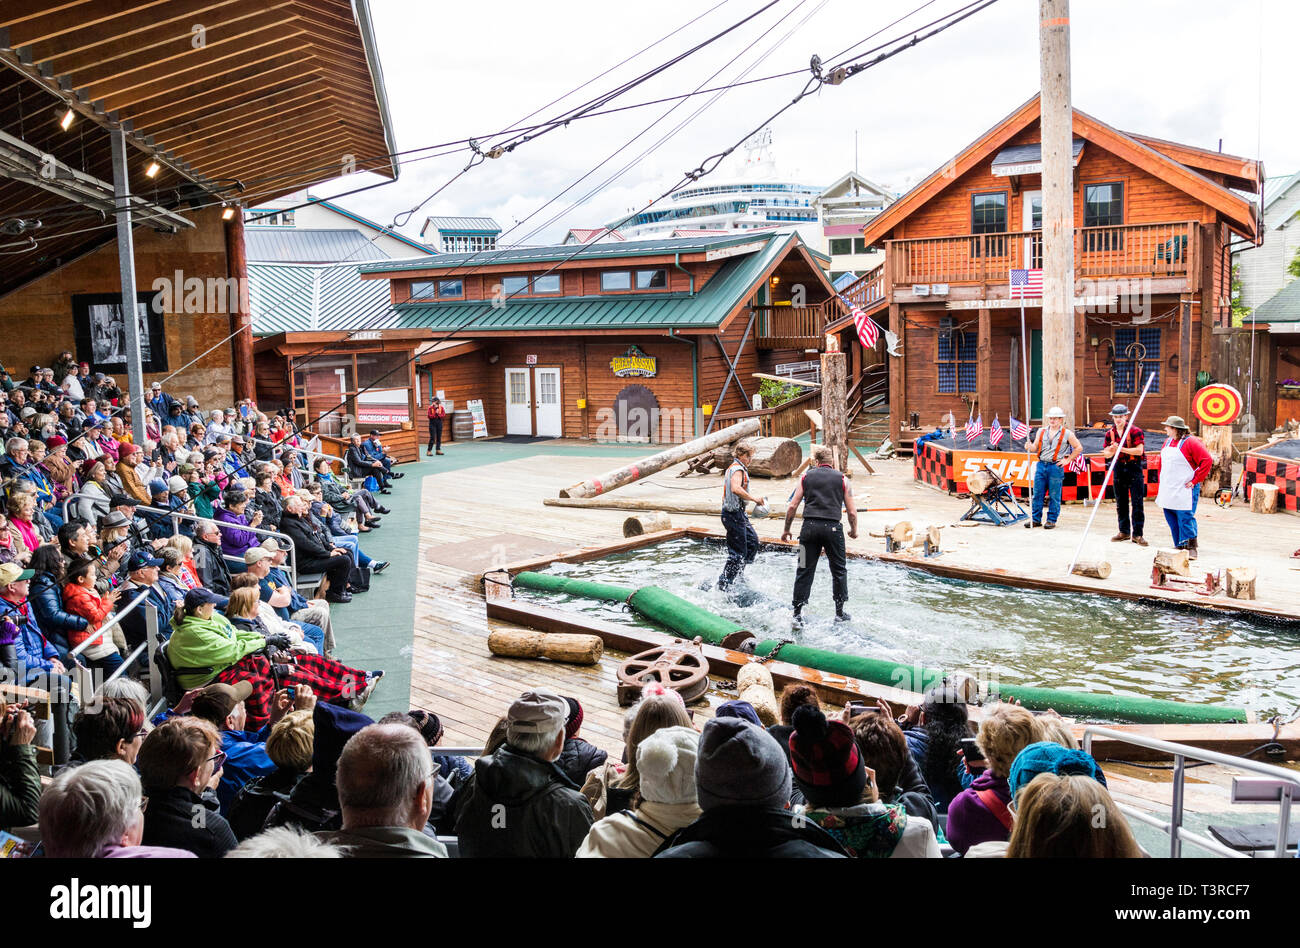 Log rolling demonstration at the Great Alaskan Lumberjack Show in Ketchikan, Alaska USA Stock Photo